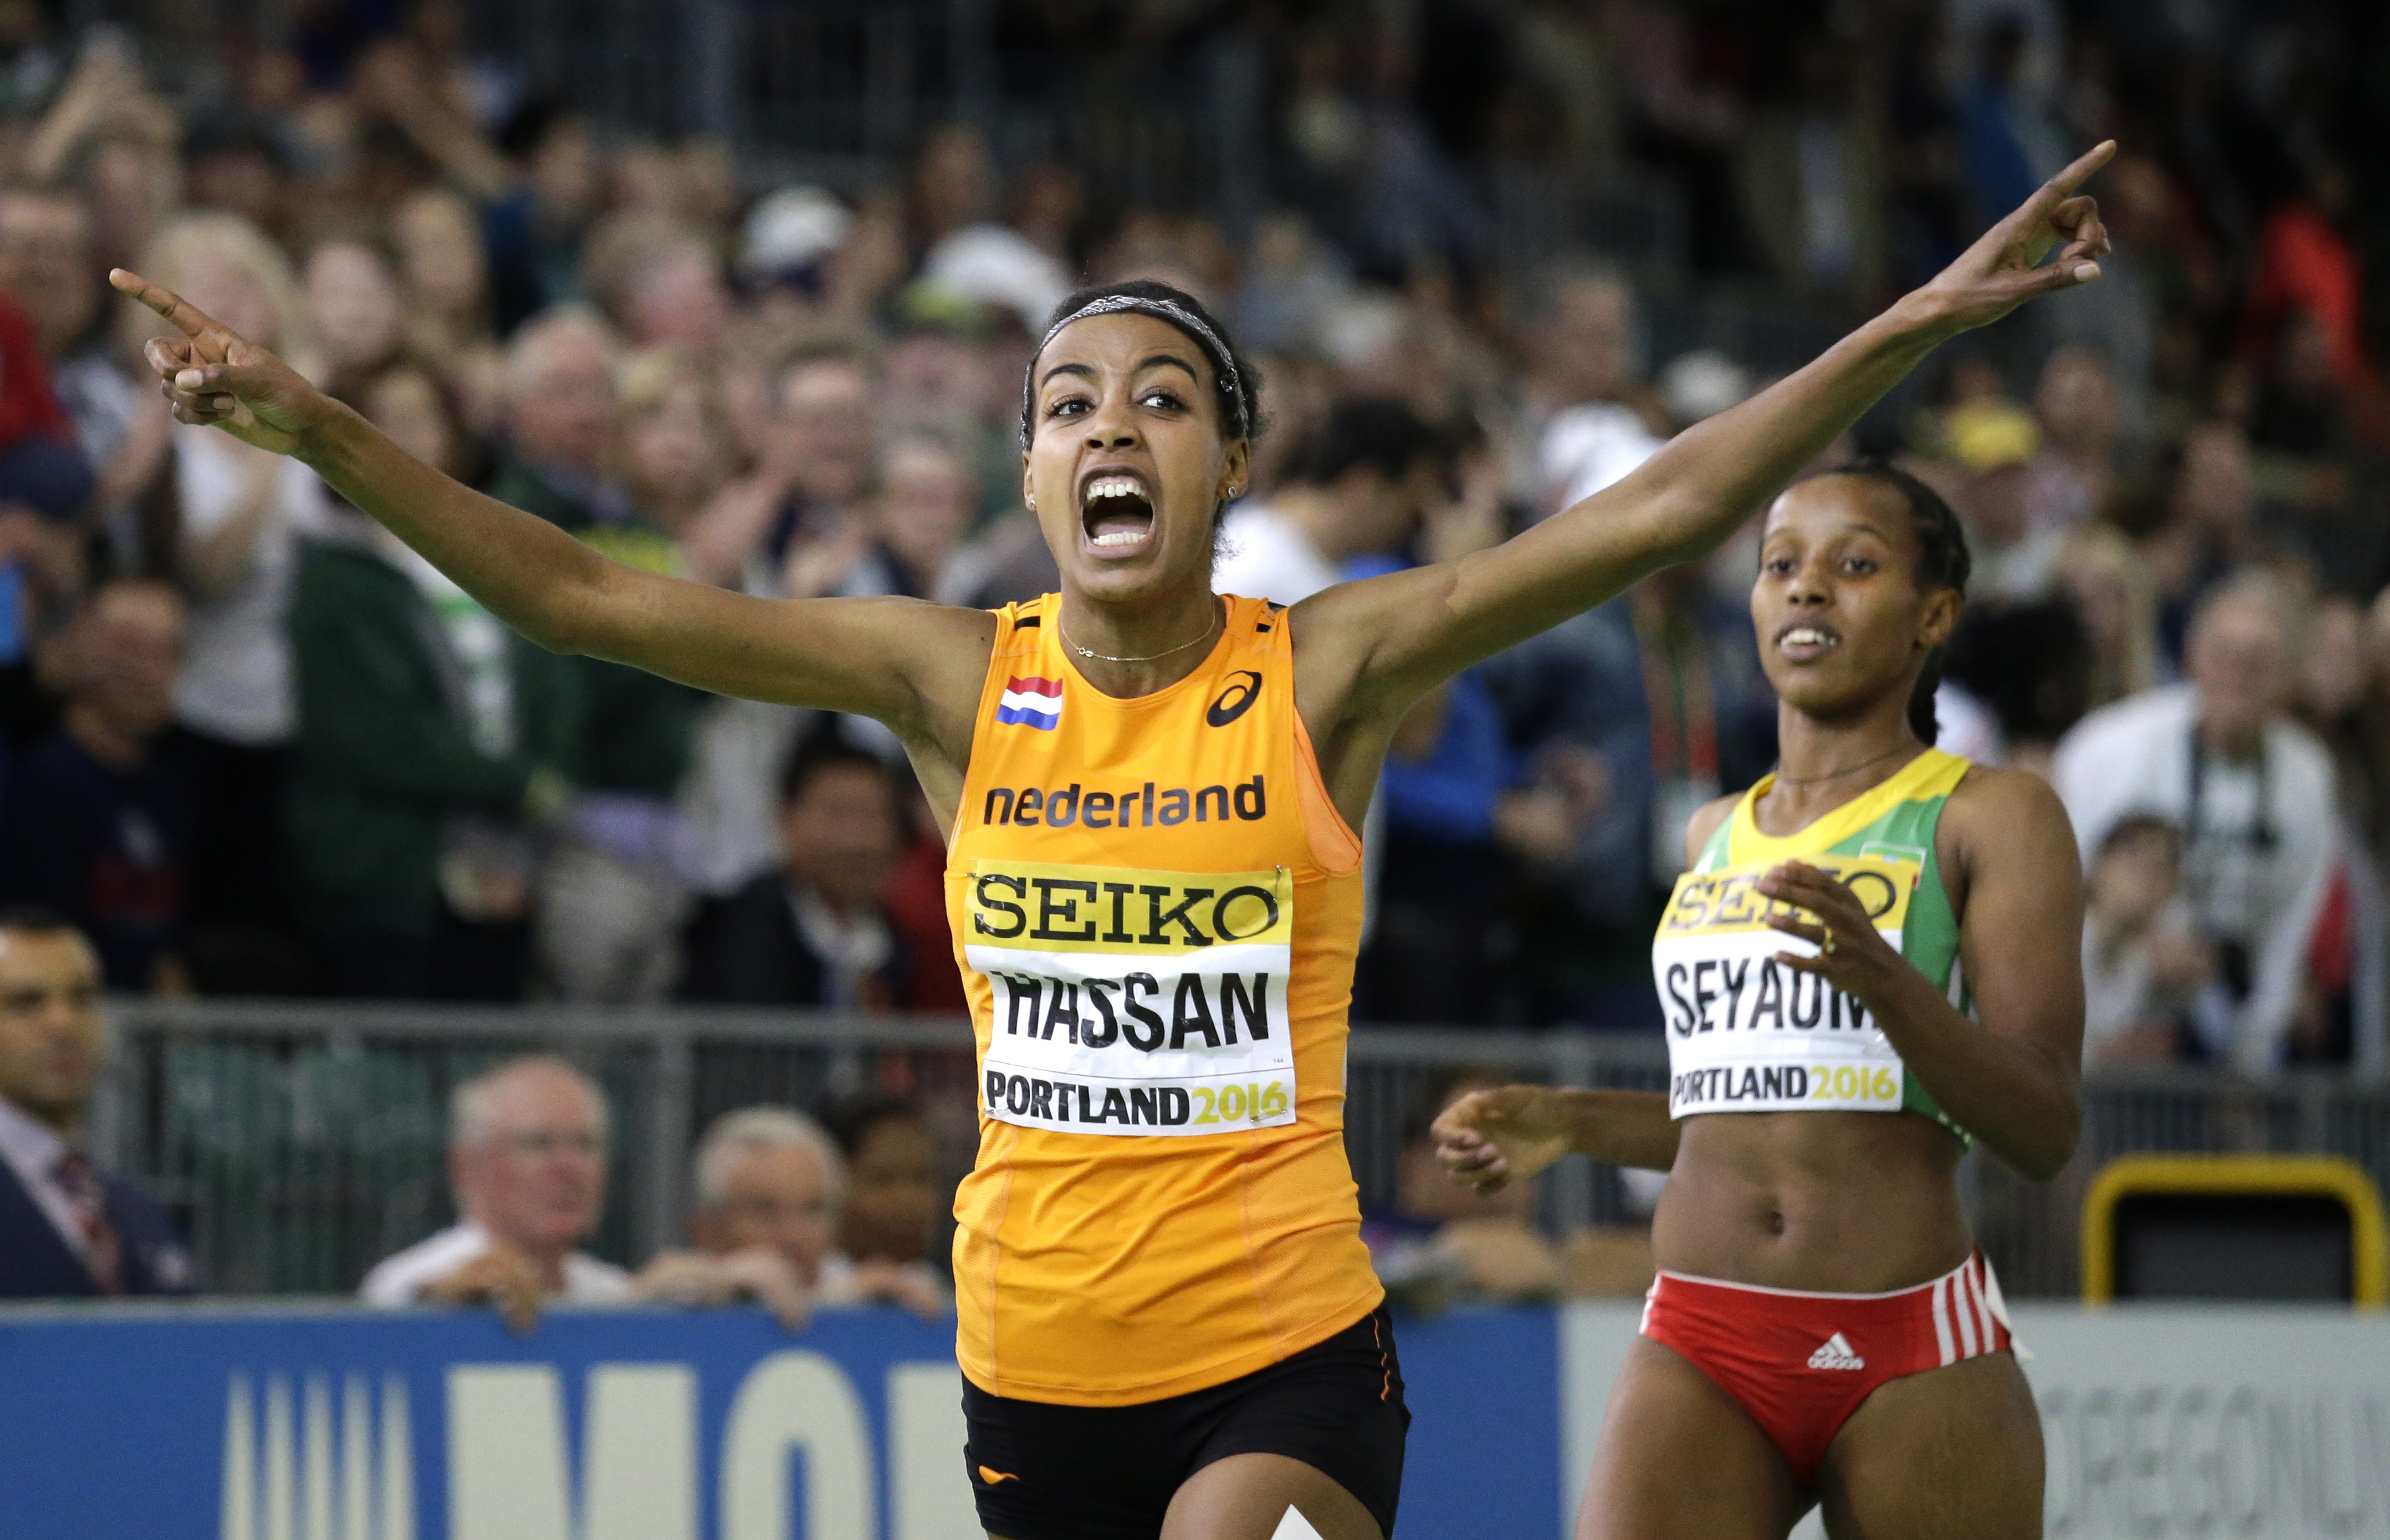 Sifan Hassan crosses the finishing line to take the world indoor 1,500 metres title. Photo: AP Photo/Elaine Thompson